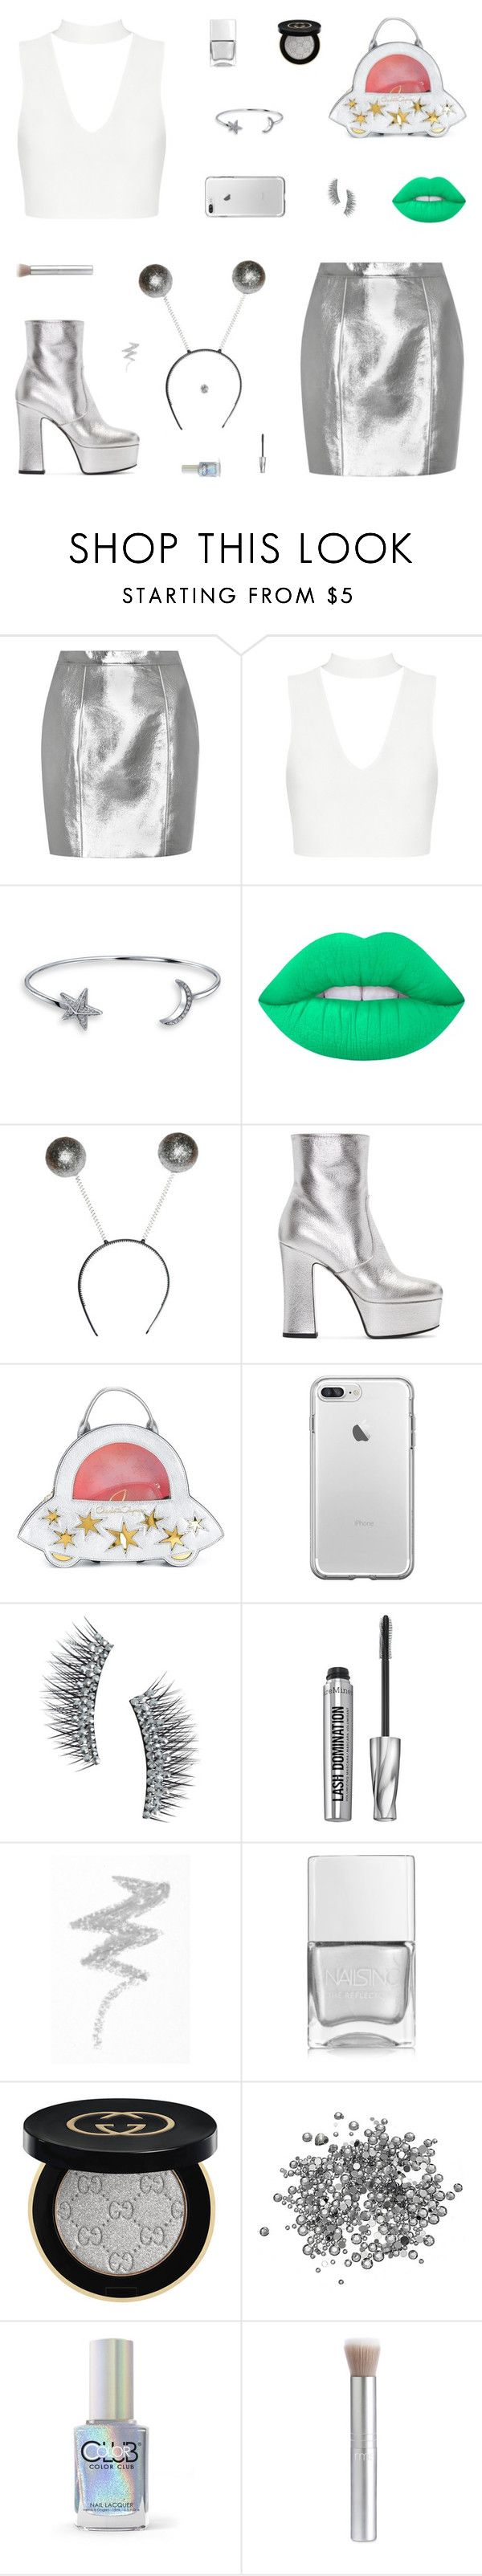 """Alien Costume"" by belenloperfido ❤ liked on Polyvore featuring Yves Saint Laurent, Bling Jewelry, Lime Crime, Charlotte Olympia, Kre-at Beauty, Bare Escentuals, NYX, Nails Inc., Gucci and Color Club"